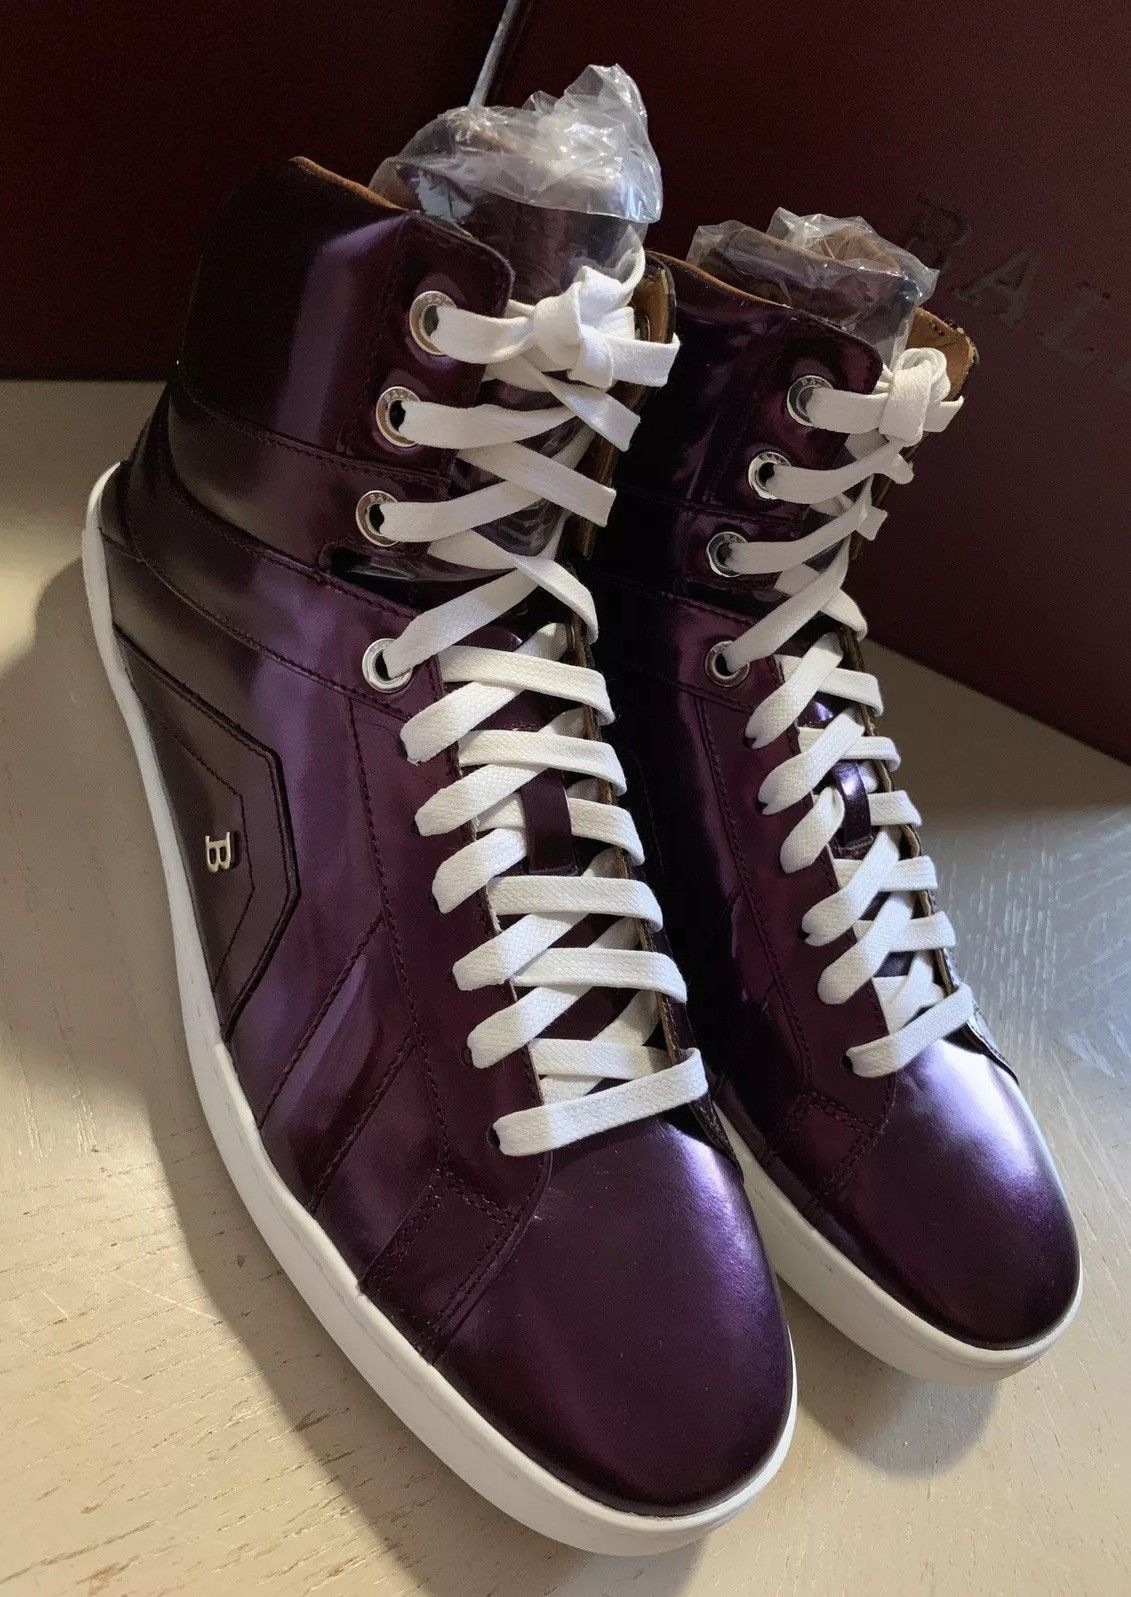 New $700 Bally Men Eticon Leather High-Top Sneakers Merlot 8.5 US Switzerland